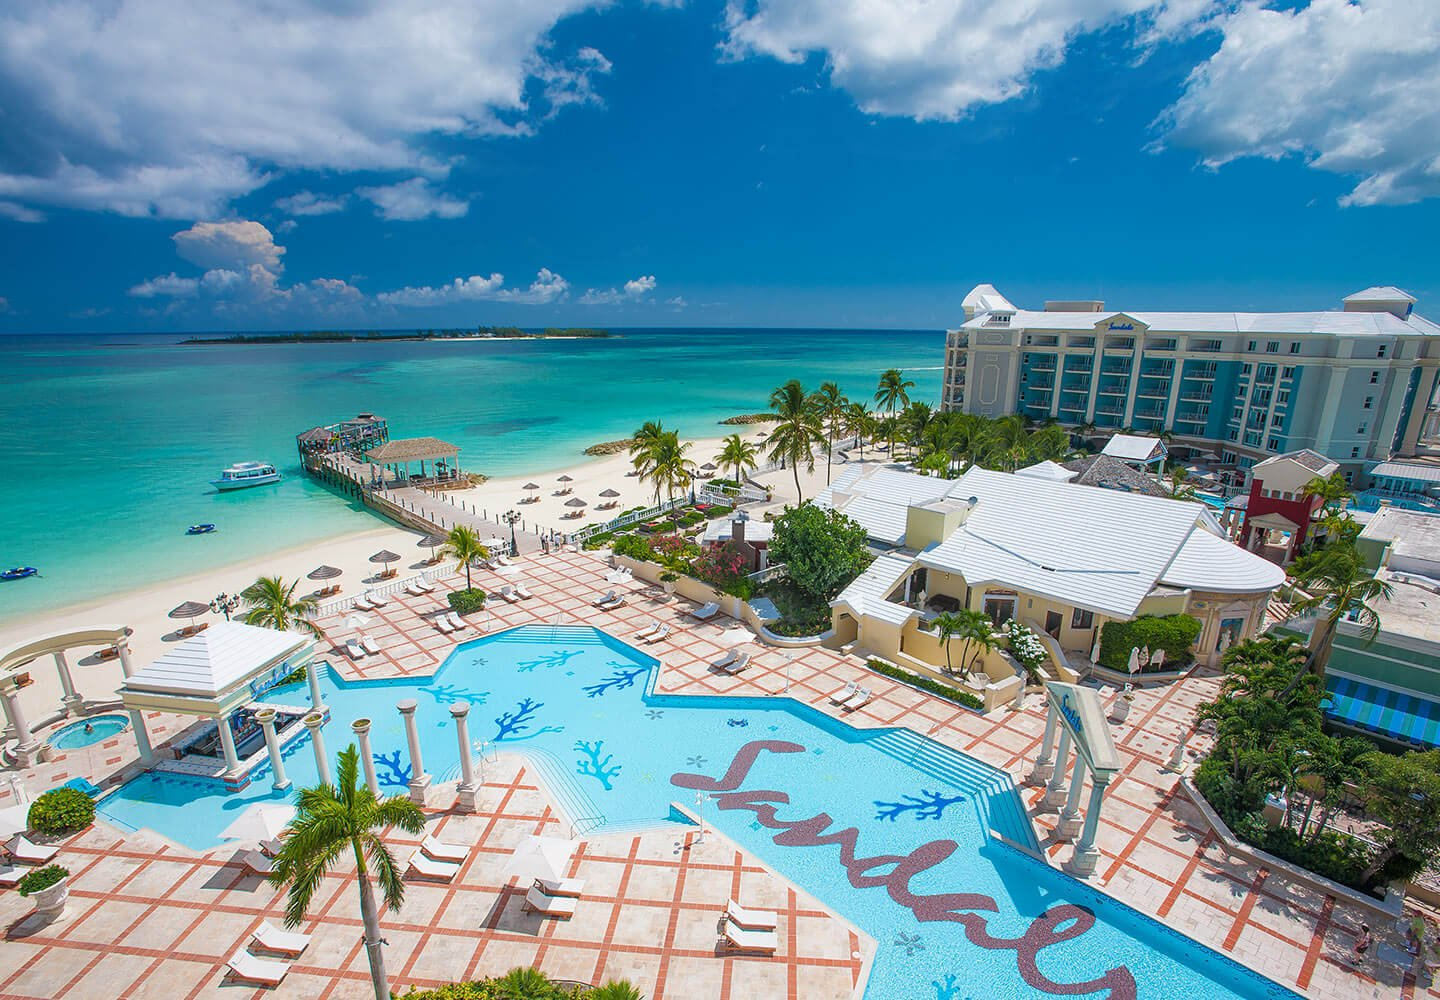 Sandals Royal Bahamian Spa Resort & Offshore Island - All Inclusive Vacations